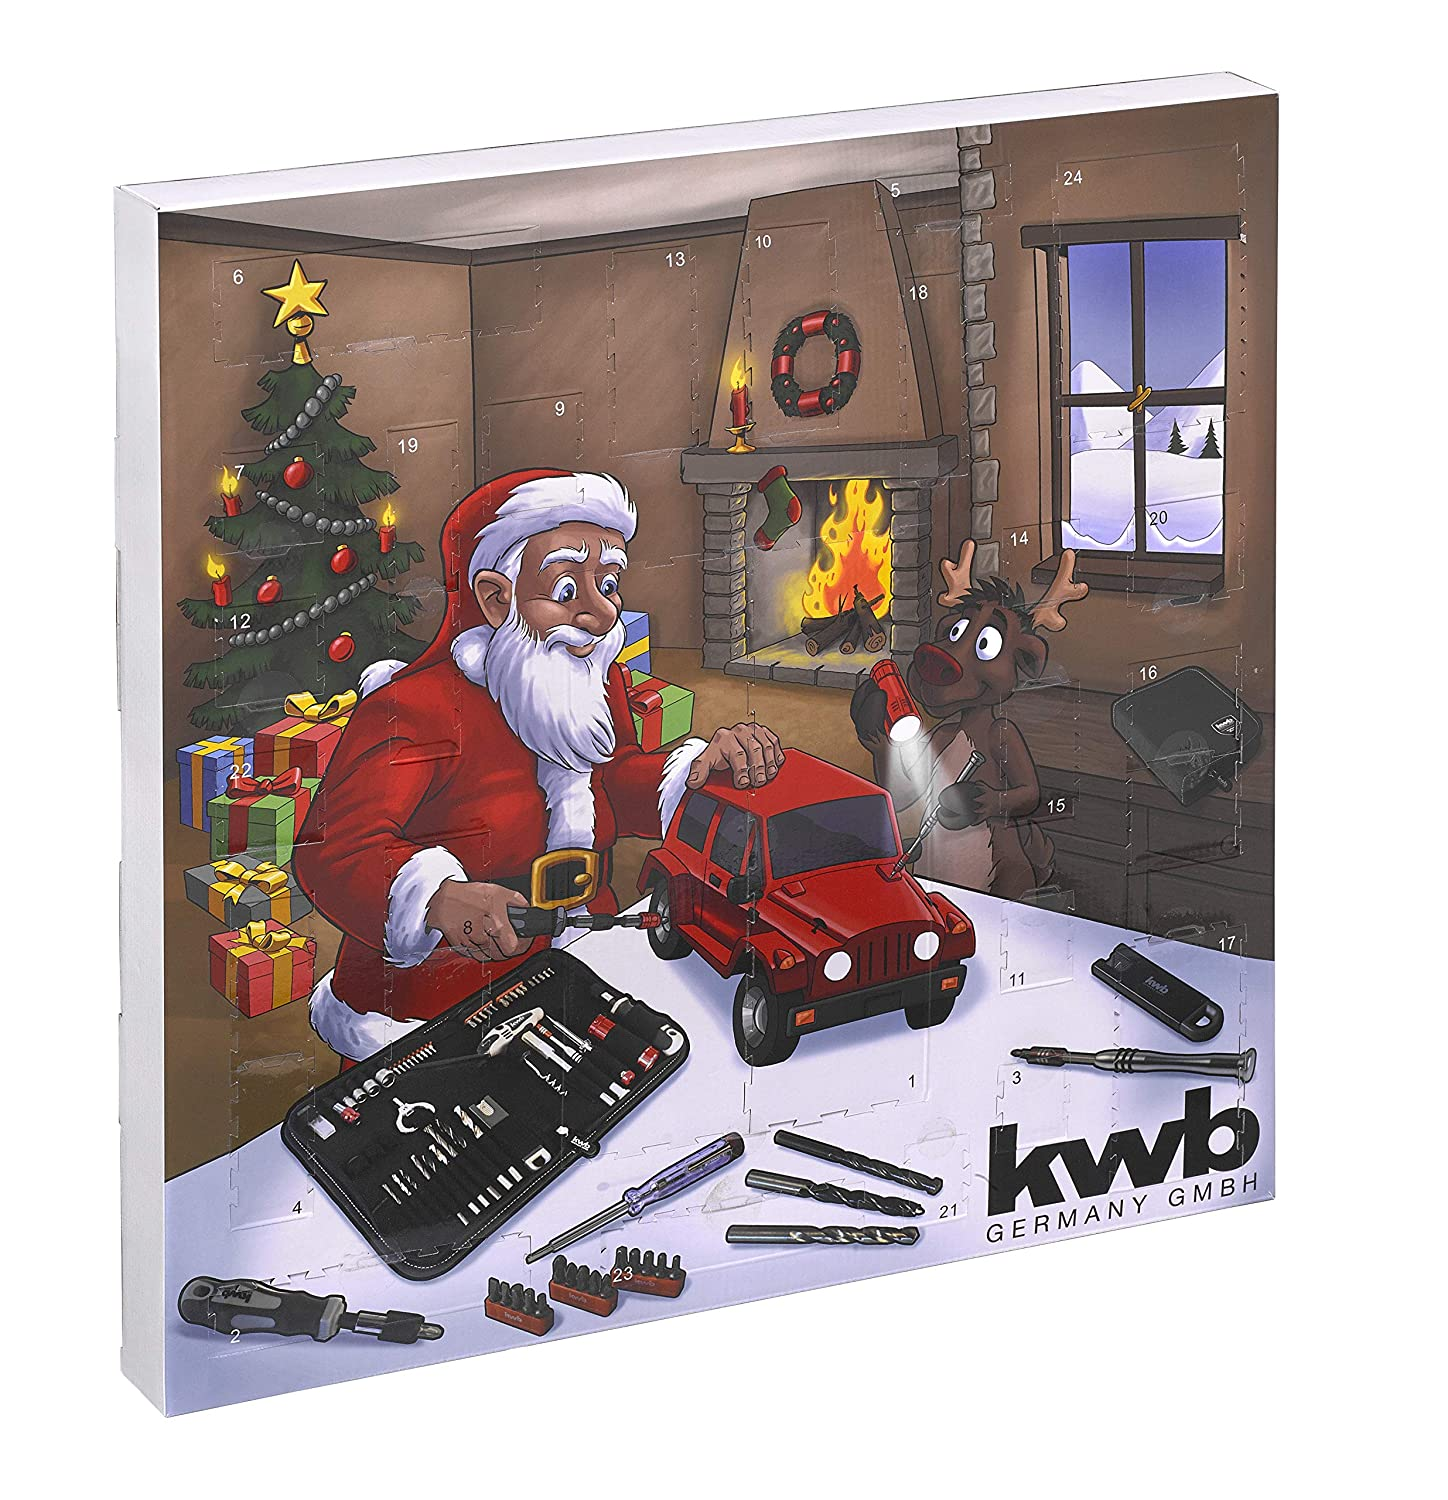 kwb Adventskalender 2018 Edition Der originelle